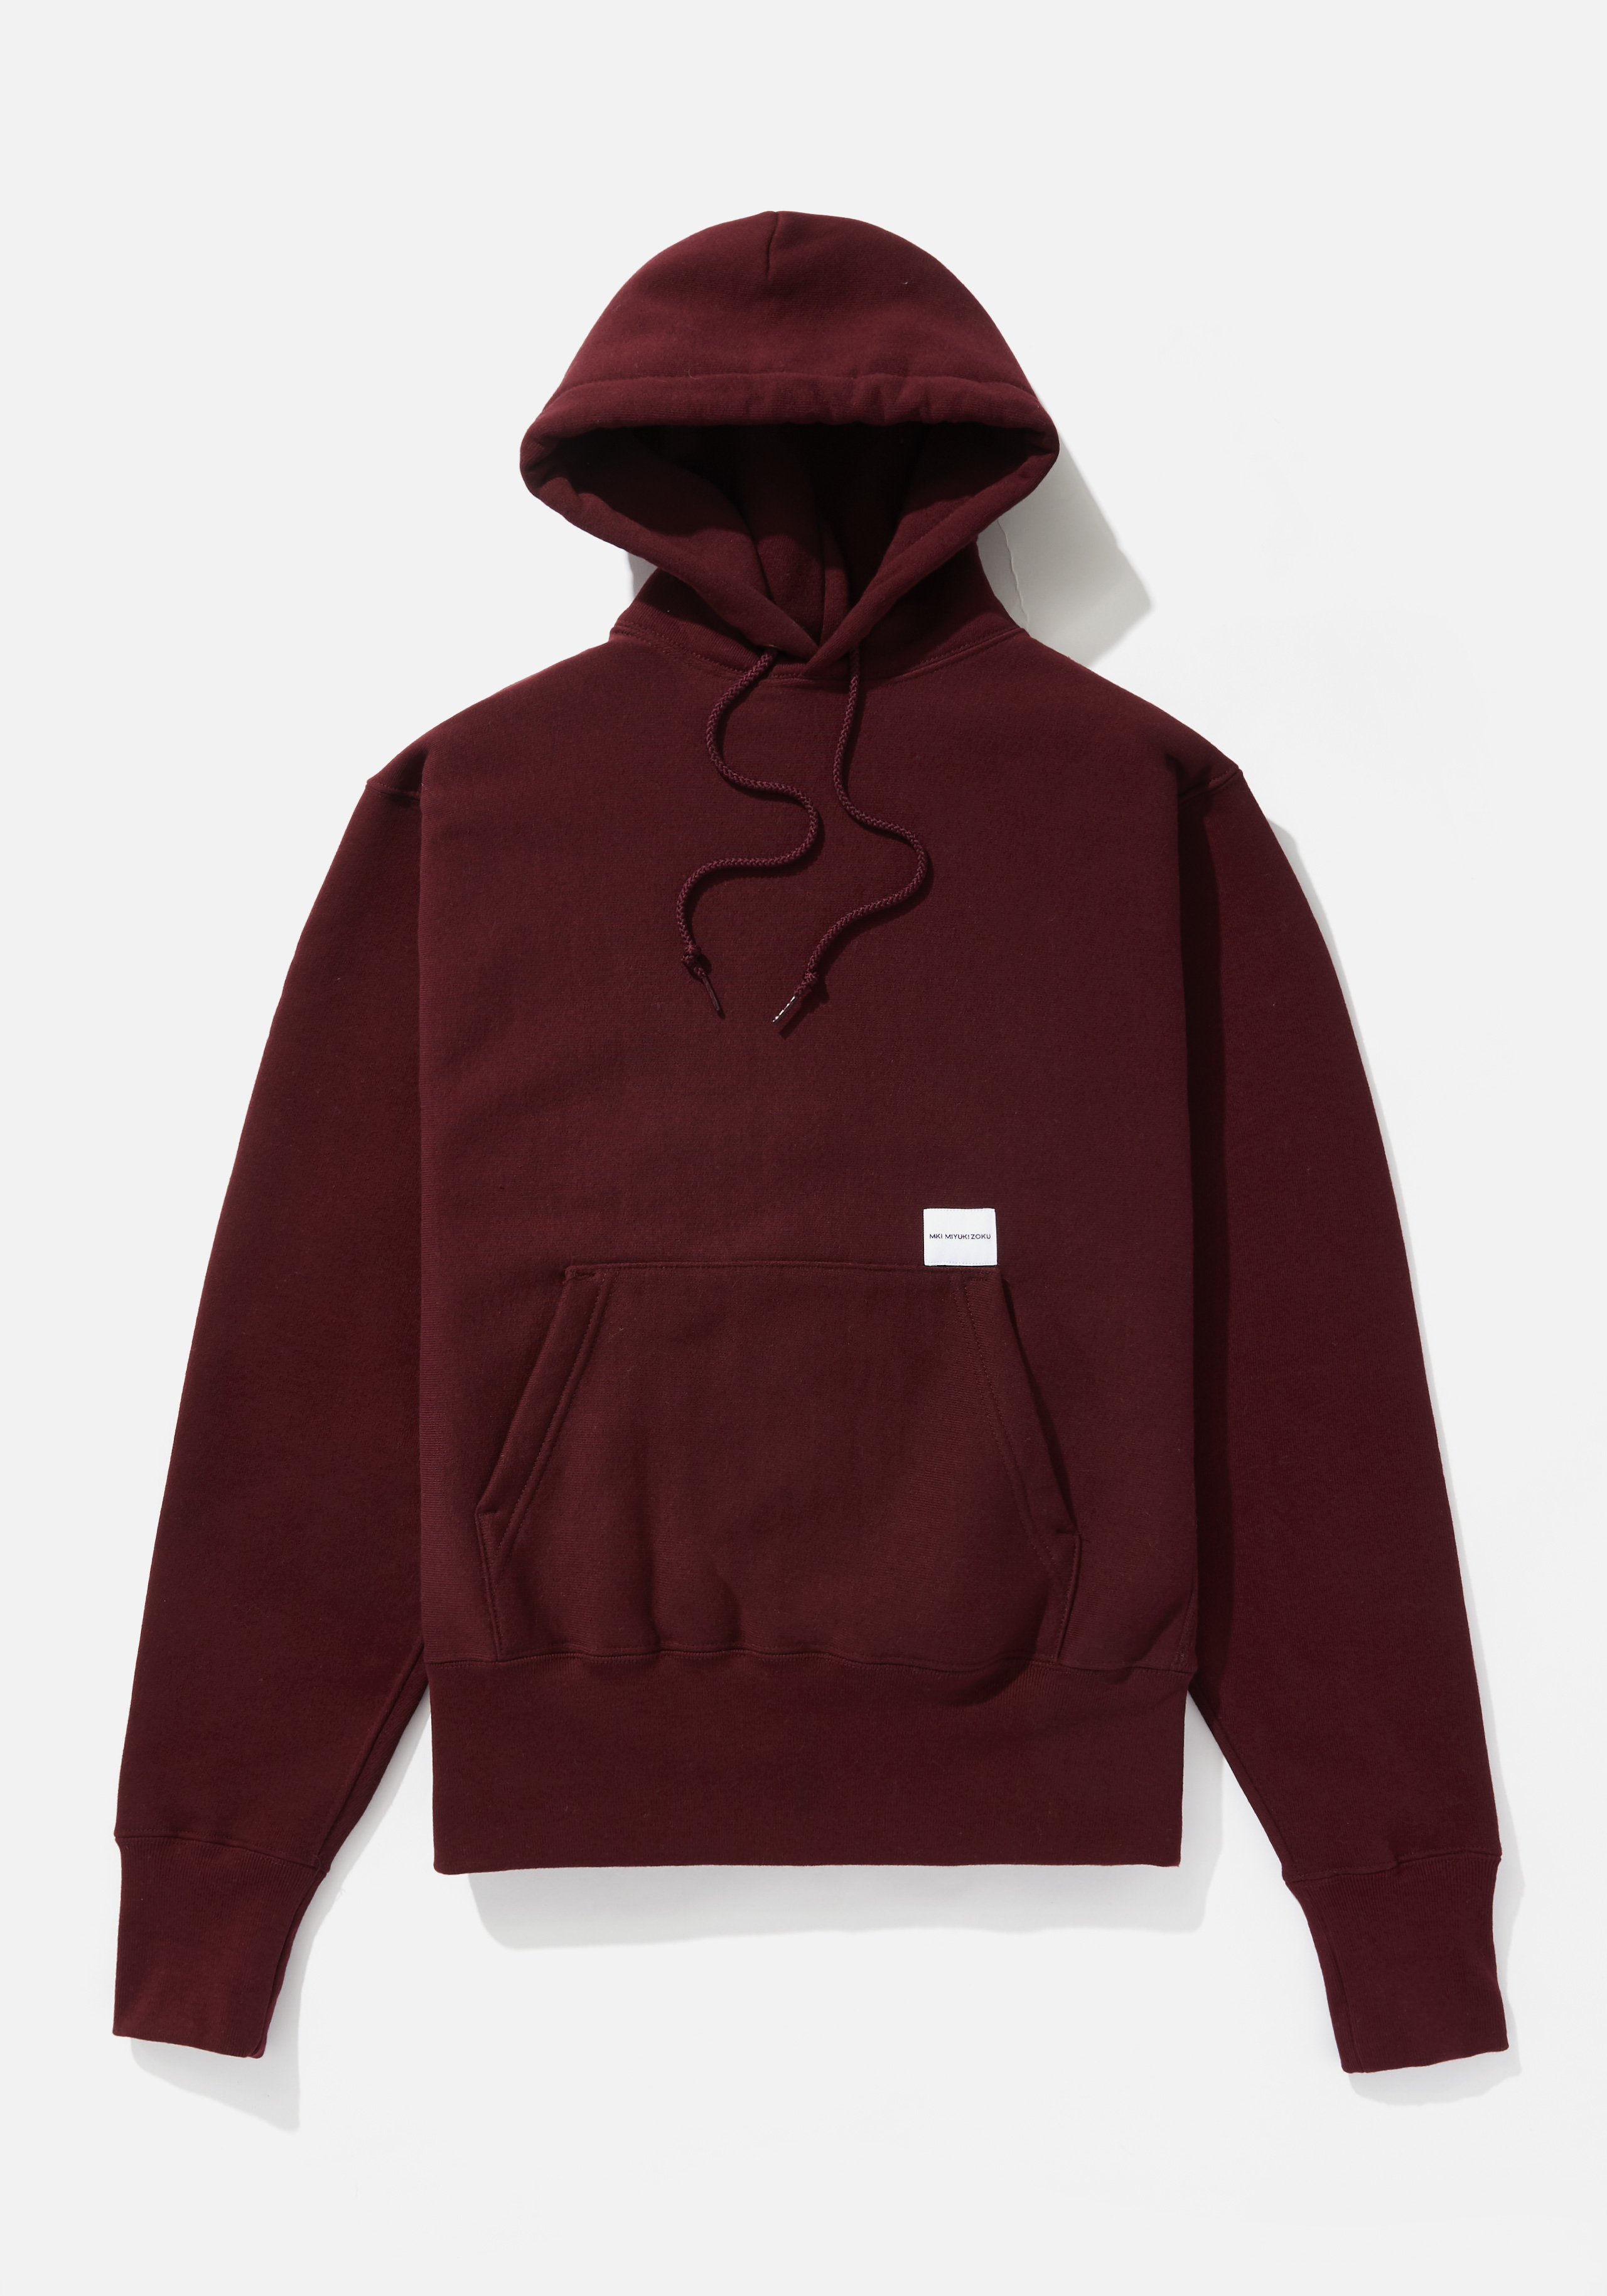 mki 12oz hoody made in usa 1